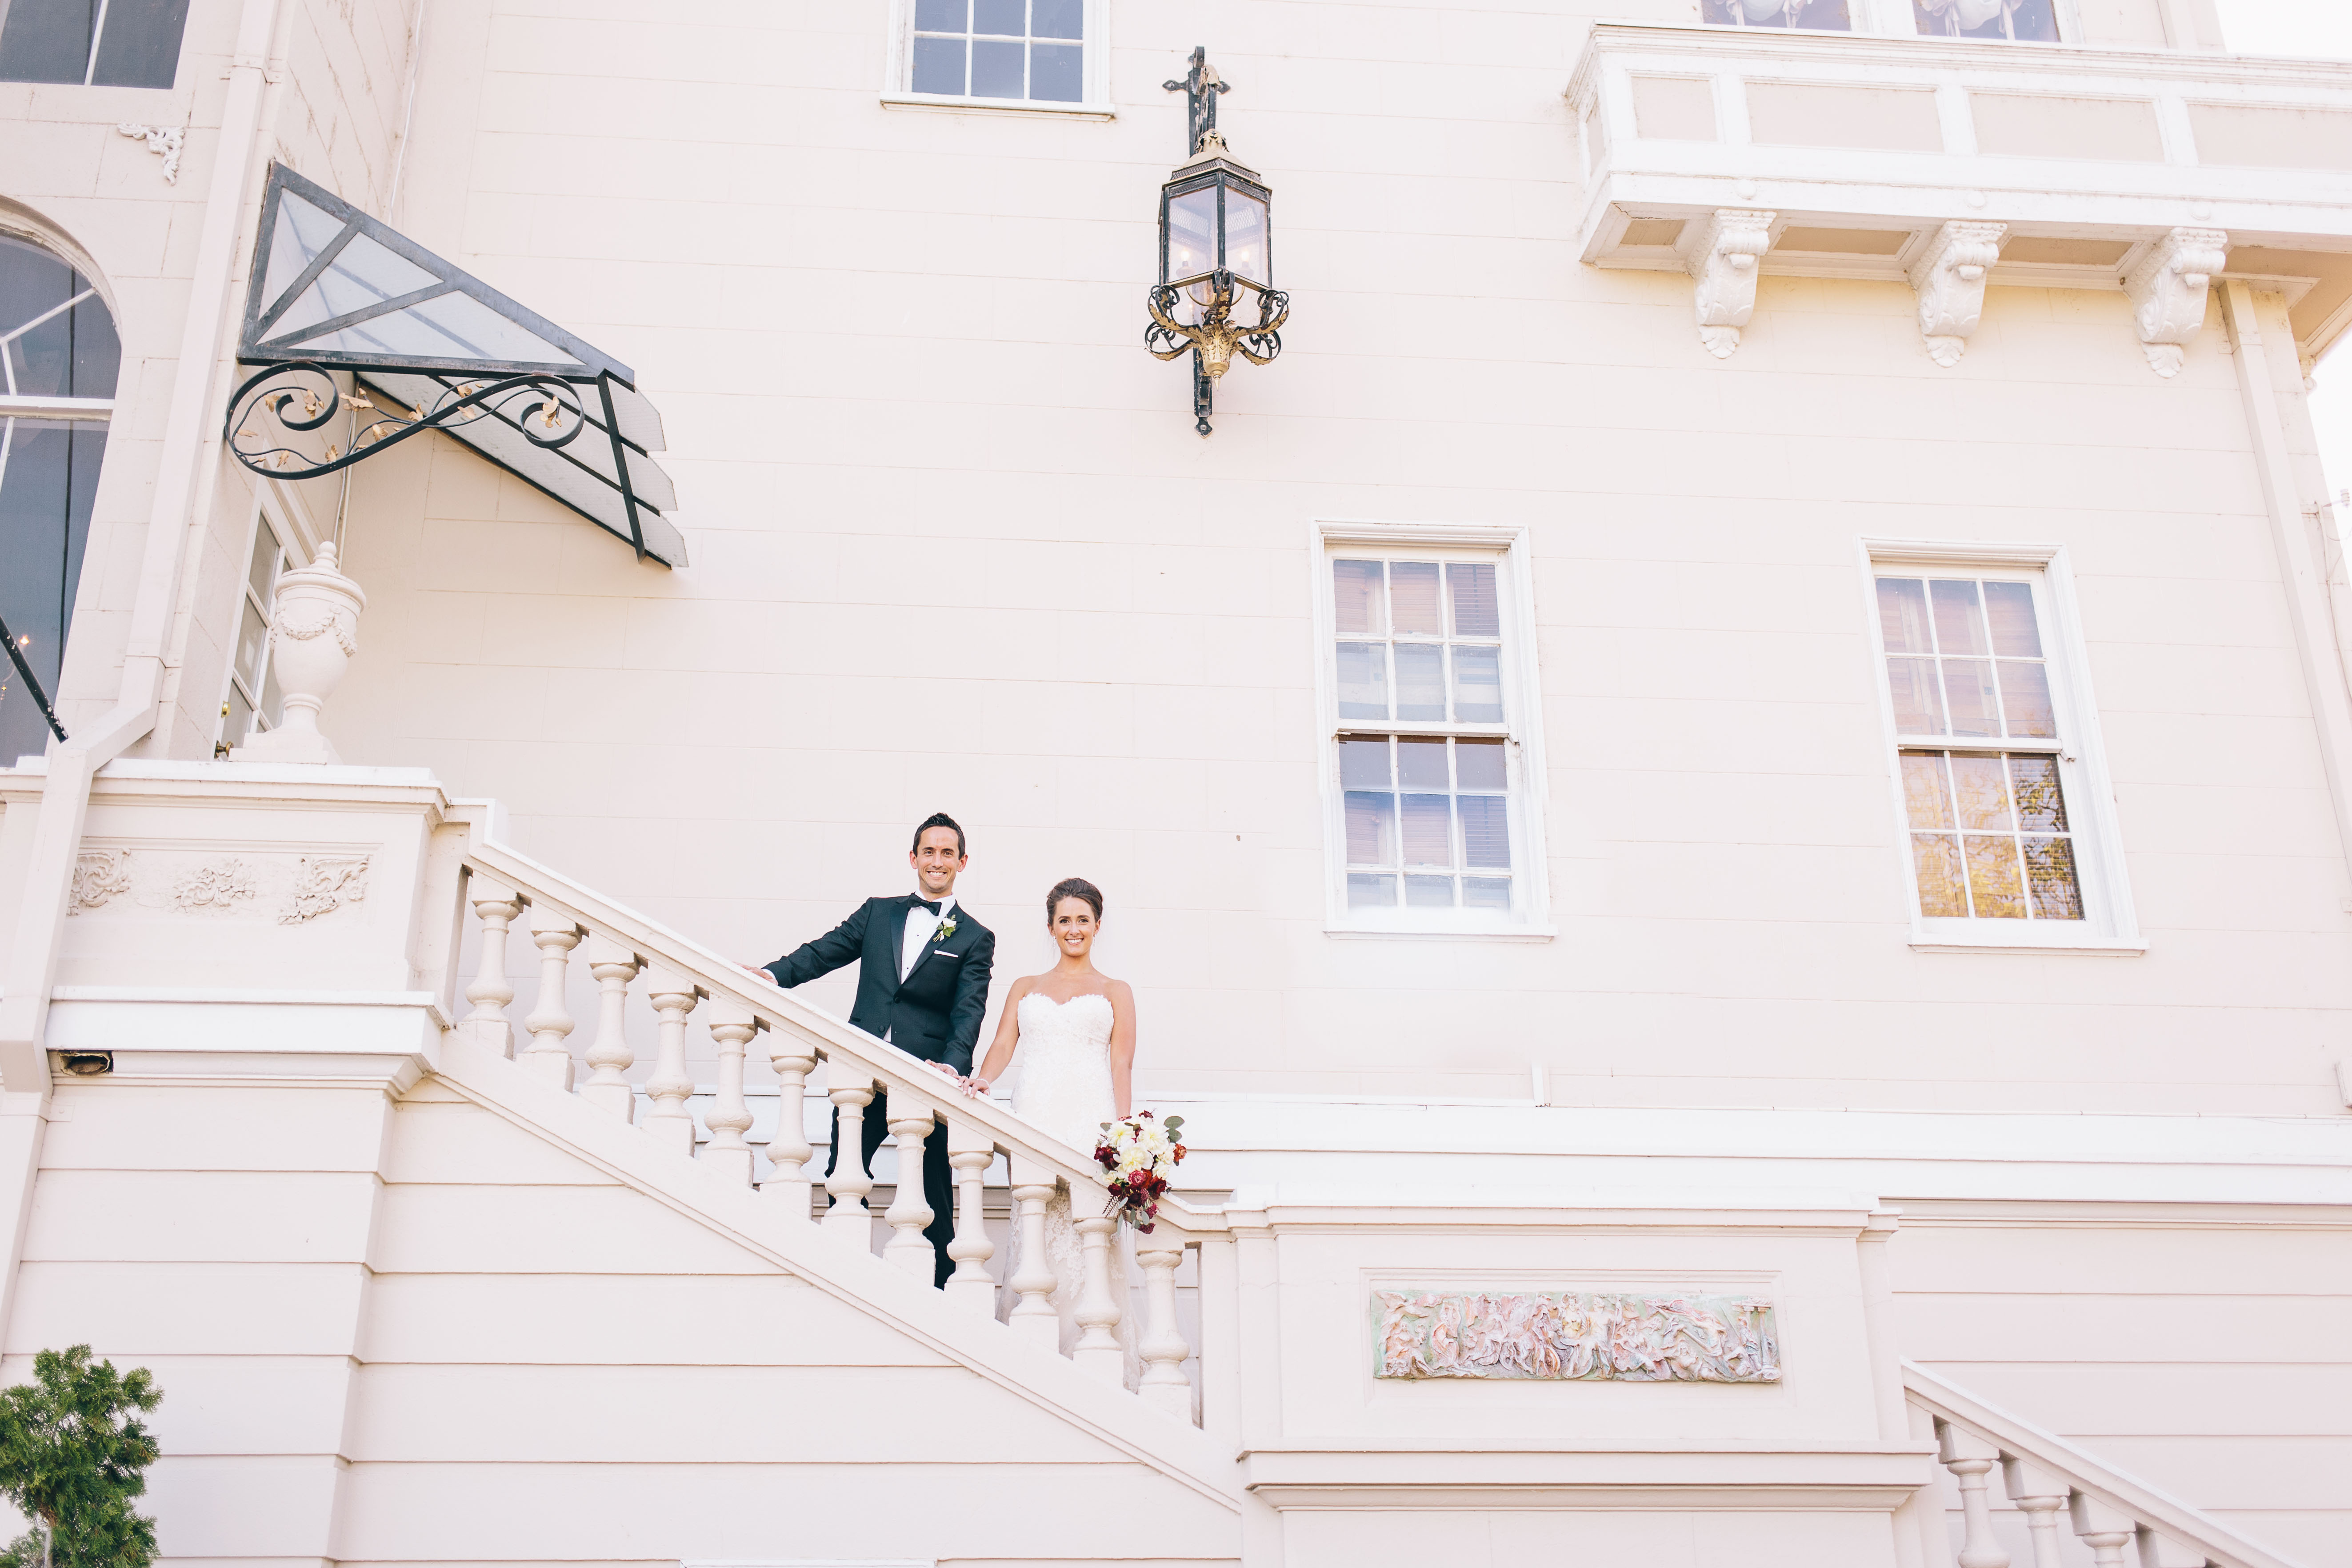 Mansion Wedding at Grand Island Mansion near Sacramento, California - JBJ Pictures